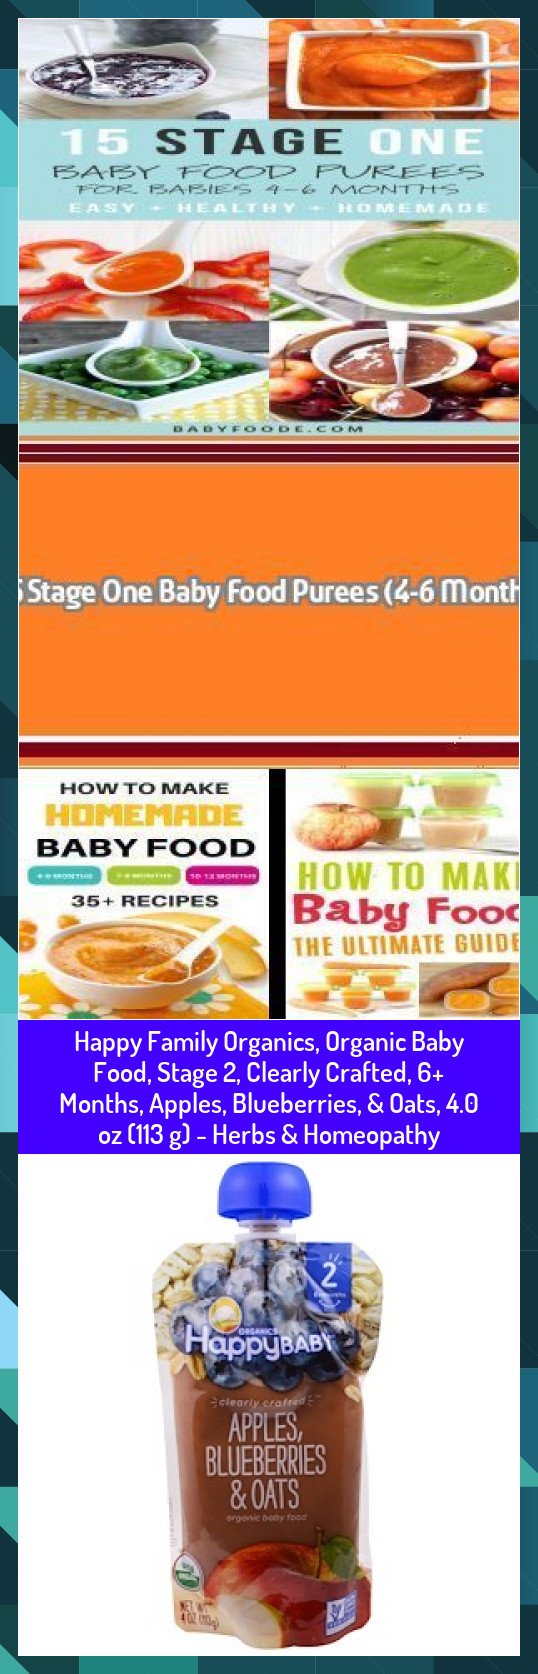 Happy Family Organics Organic Baby Food Stage 2 Clearly Crafted 6 Months Apples Blueberries  Oats 40 oz 113 g  Herbs  Homeopathy